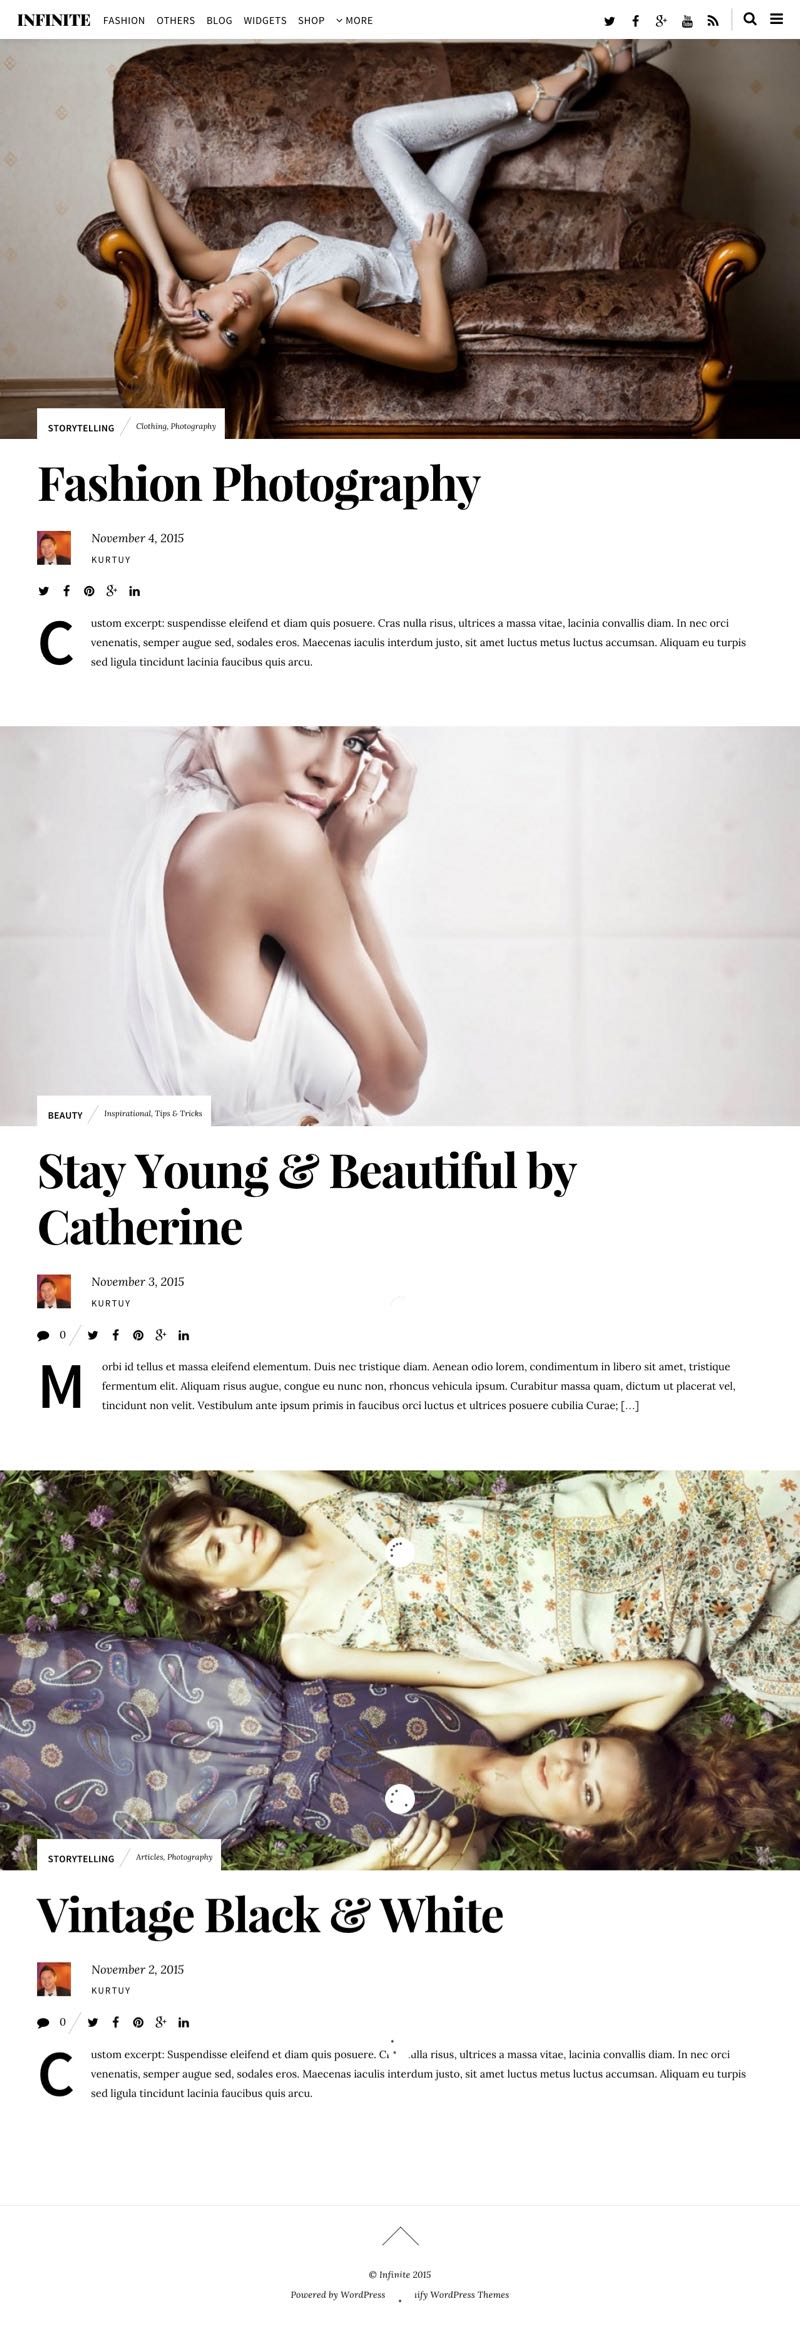 Infinite WordPress Theme like Vogue, Forbe, Mashable